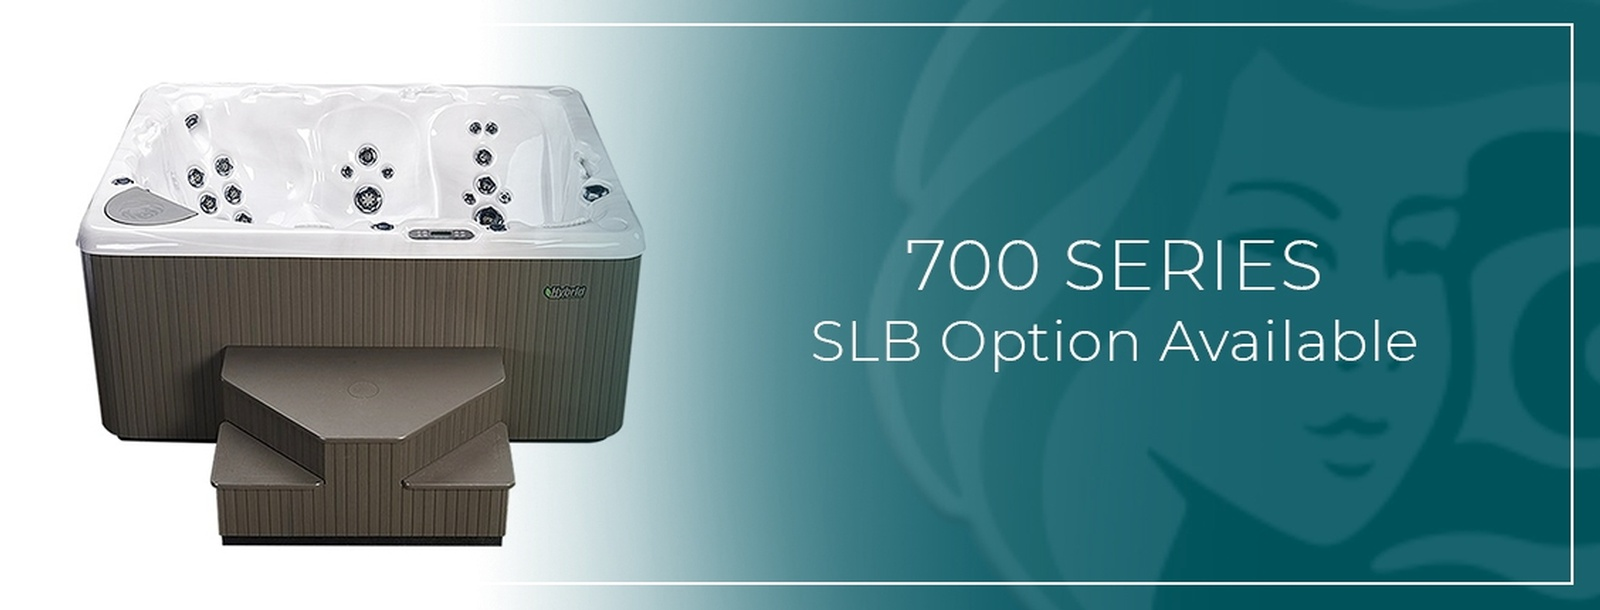 700 Series SLB Option Available at Beachcomber Lloydminster